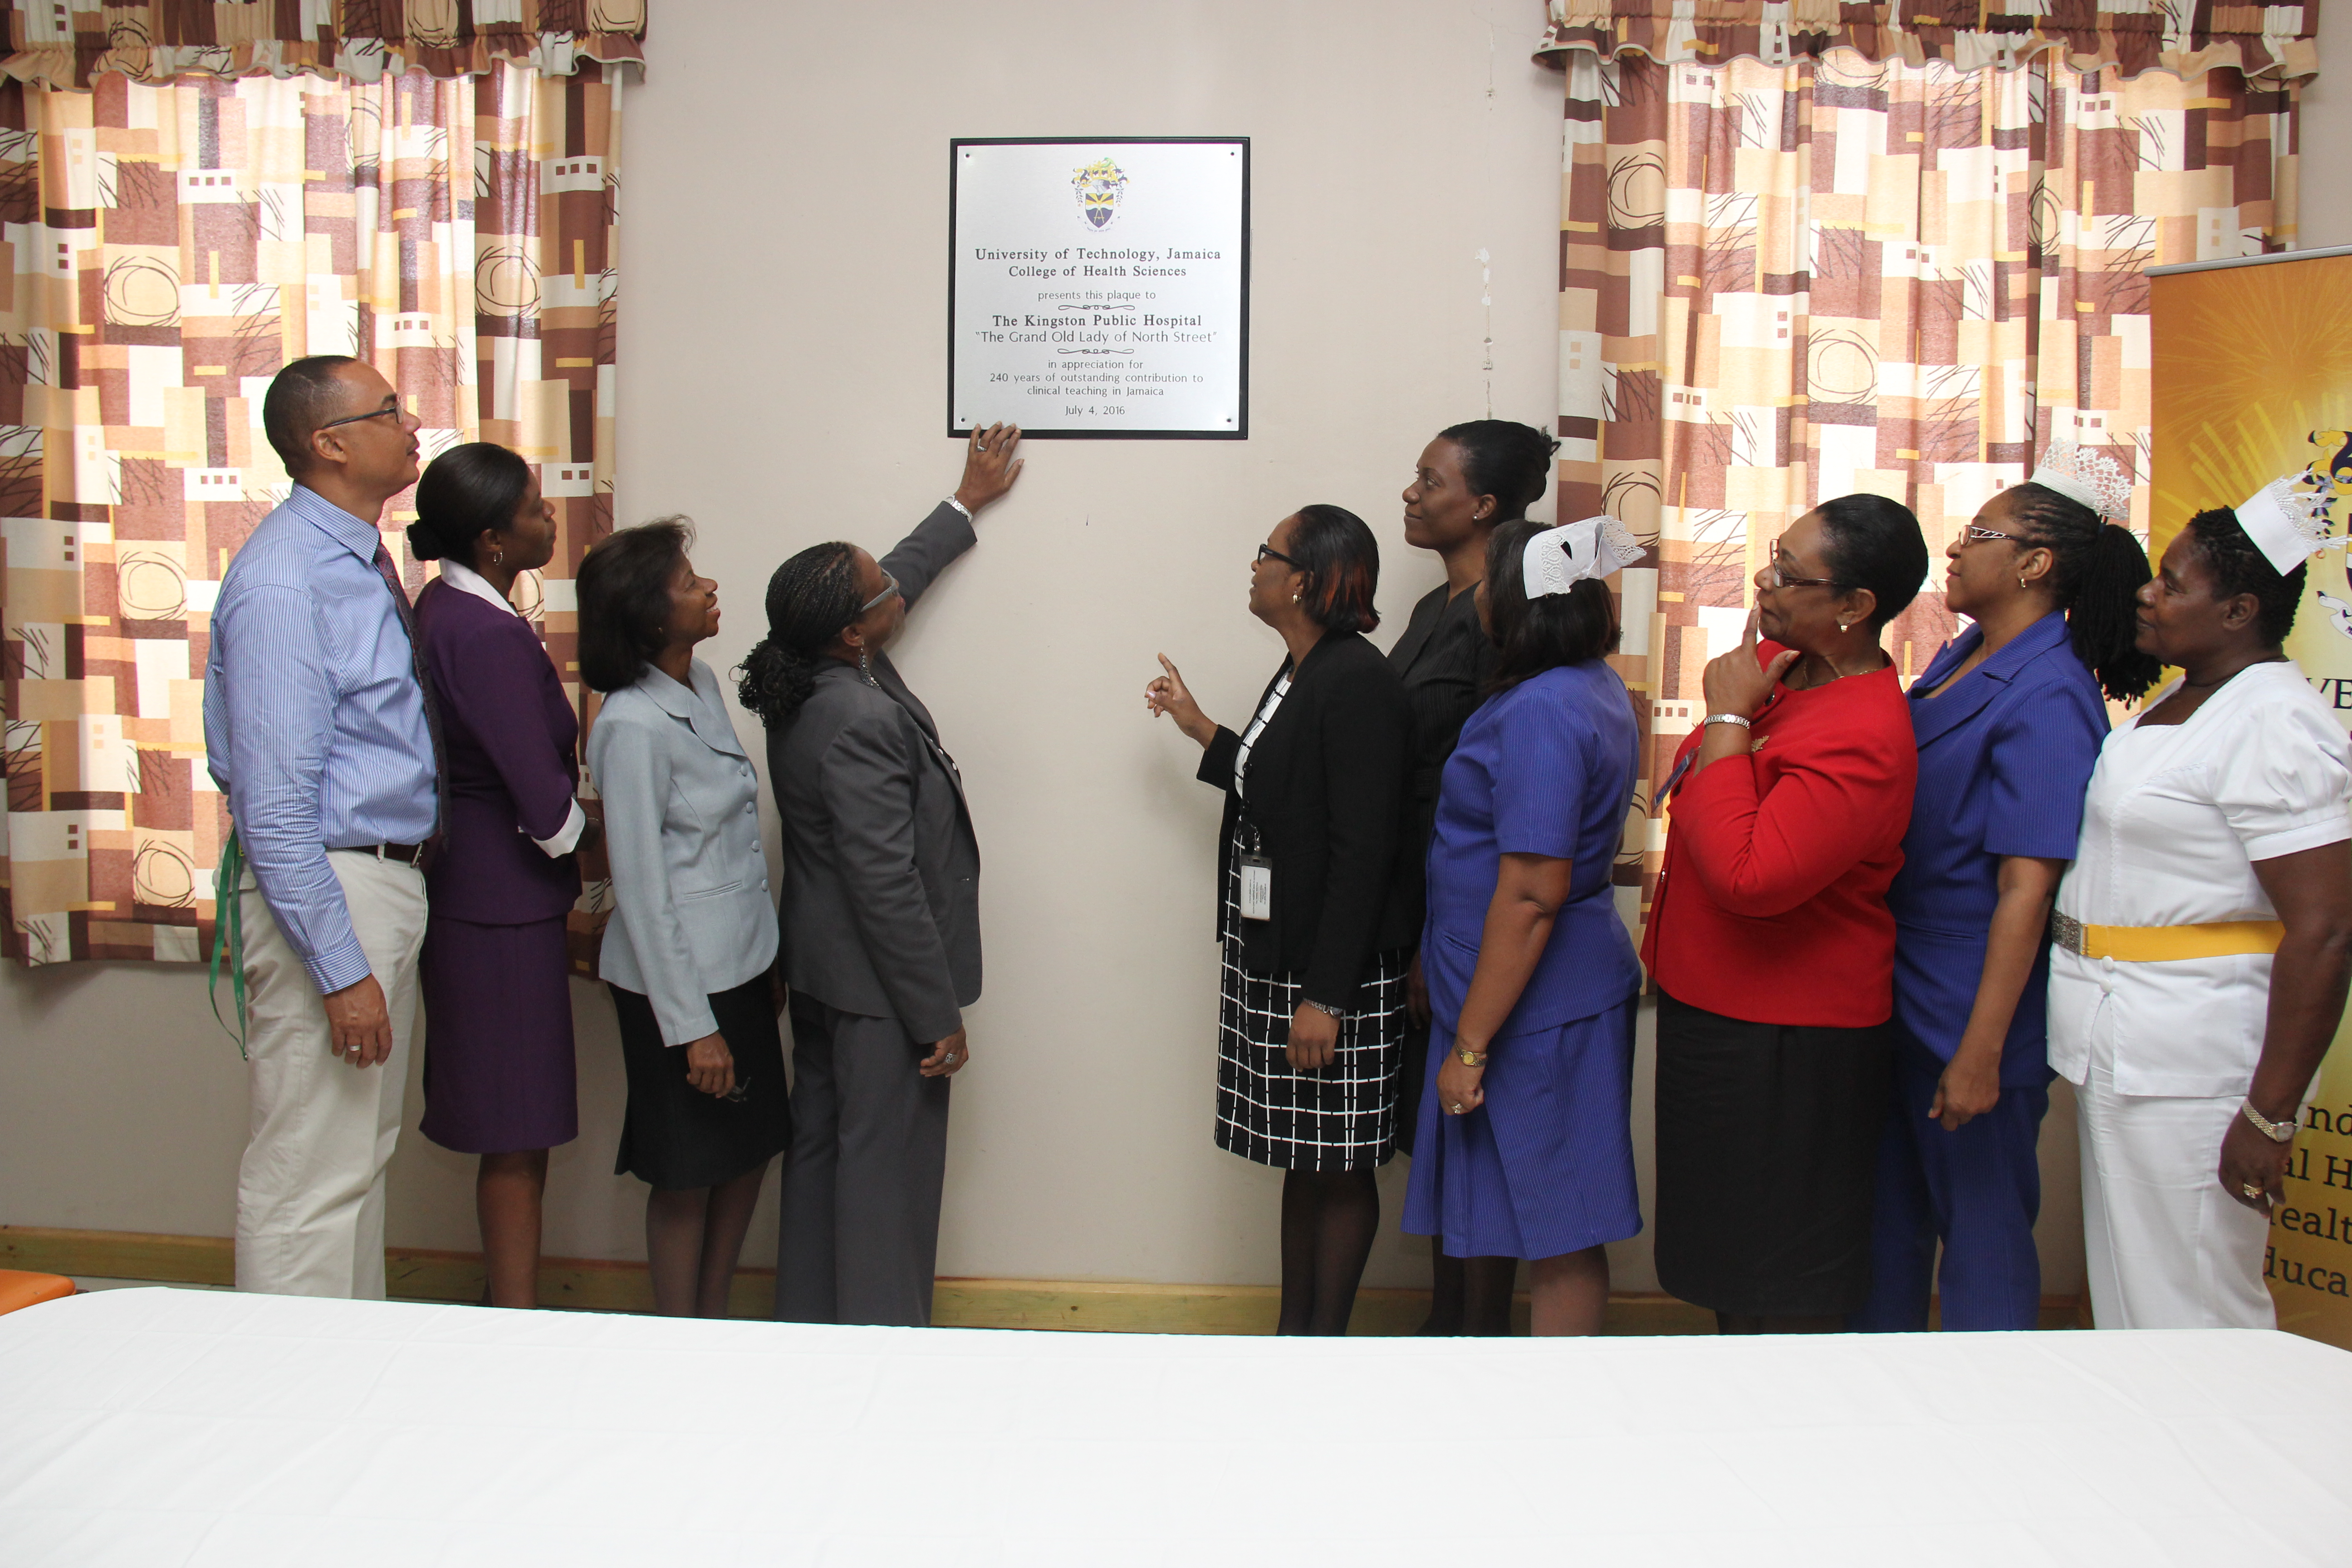 UTech, Jamaica Presents Appreciation Plaque to KPH